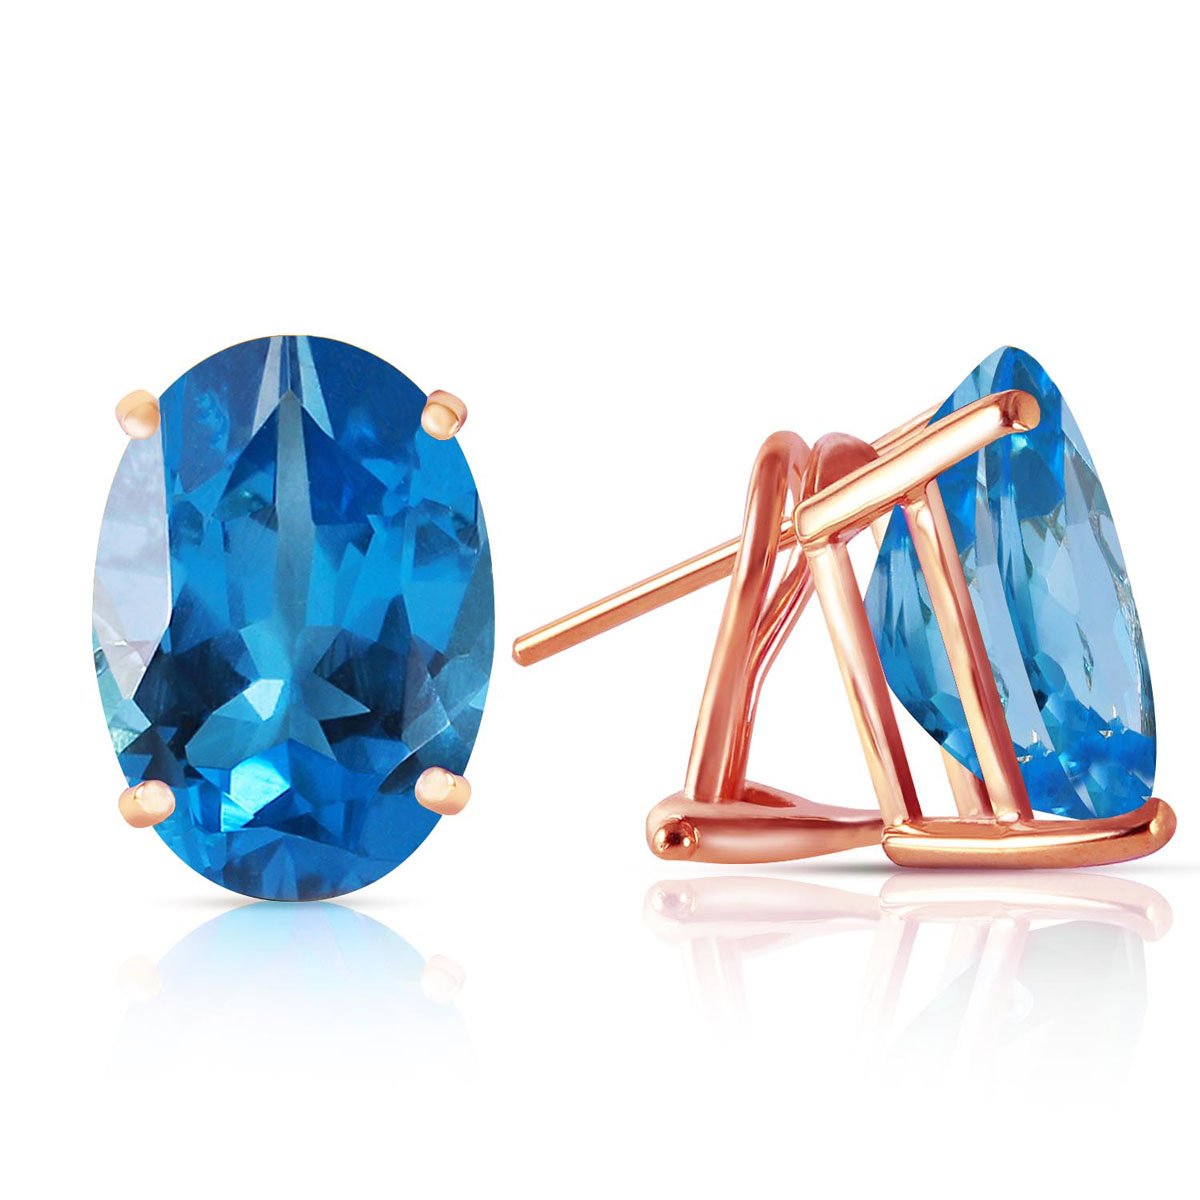 Blue Topaz Stud Earrings 16 ctw in 9ct Rose Gold